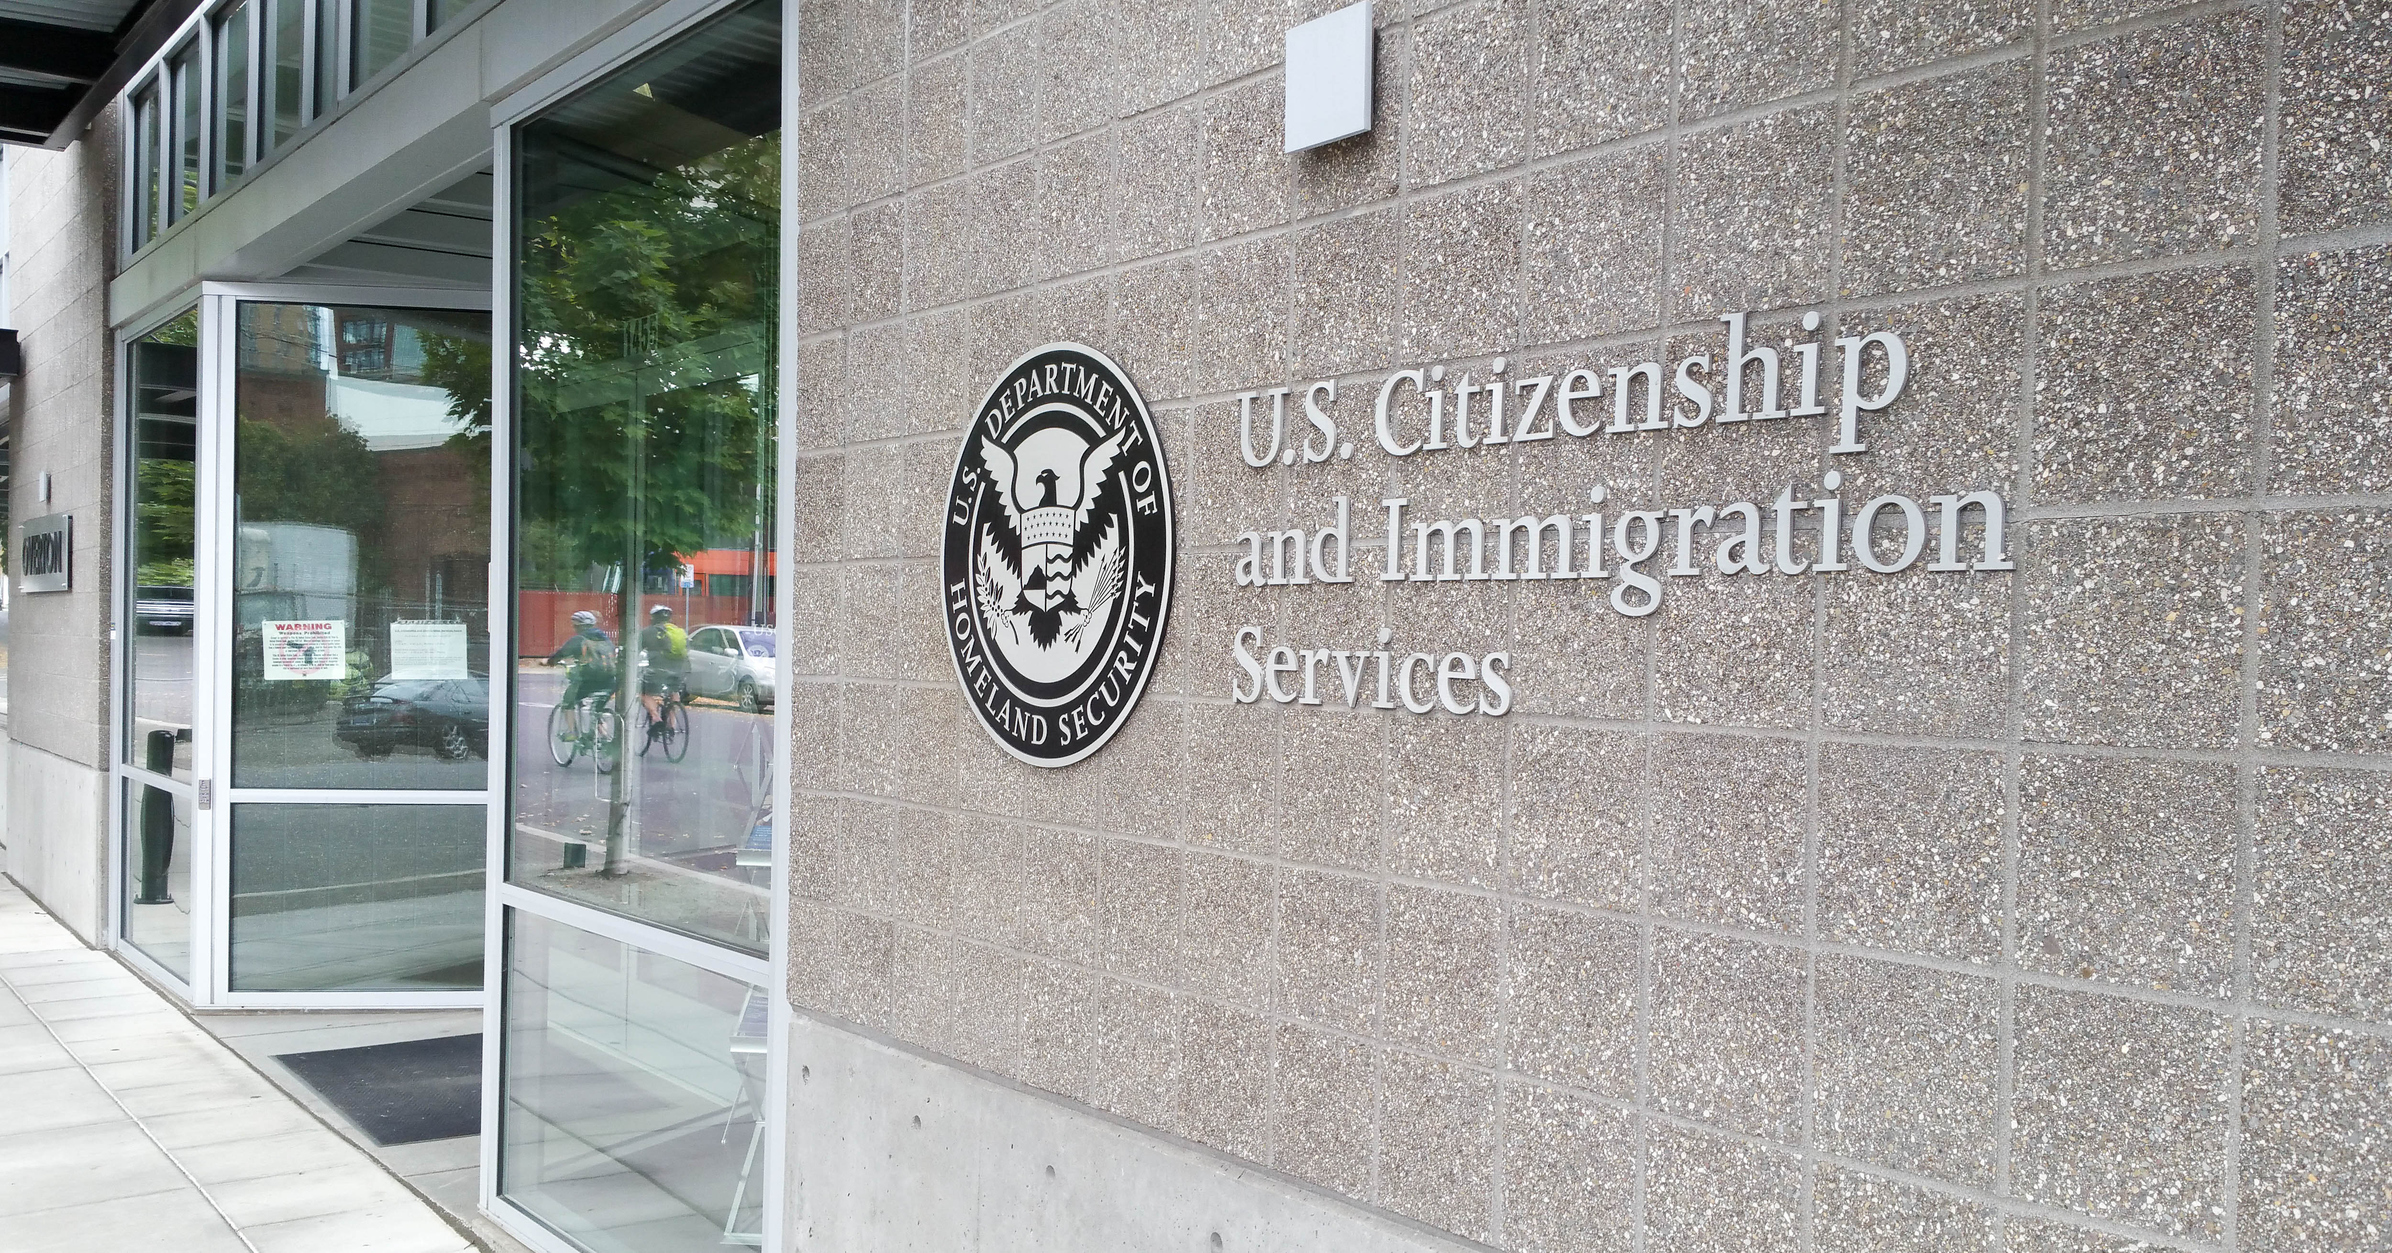 US will suspend fast processing for H-1B visas | Ars Technica